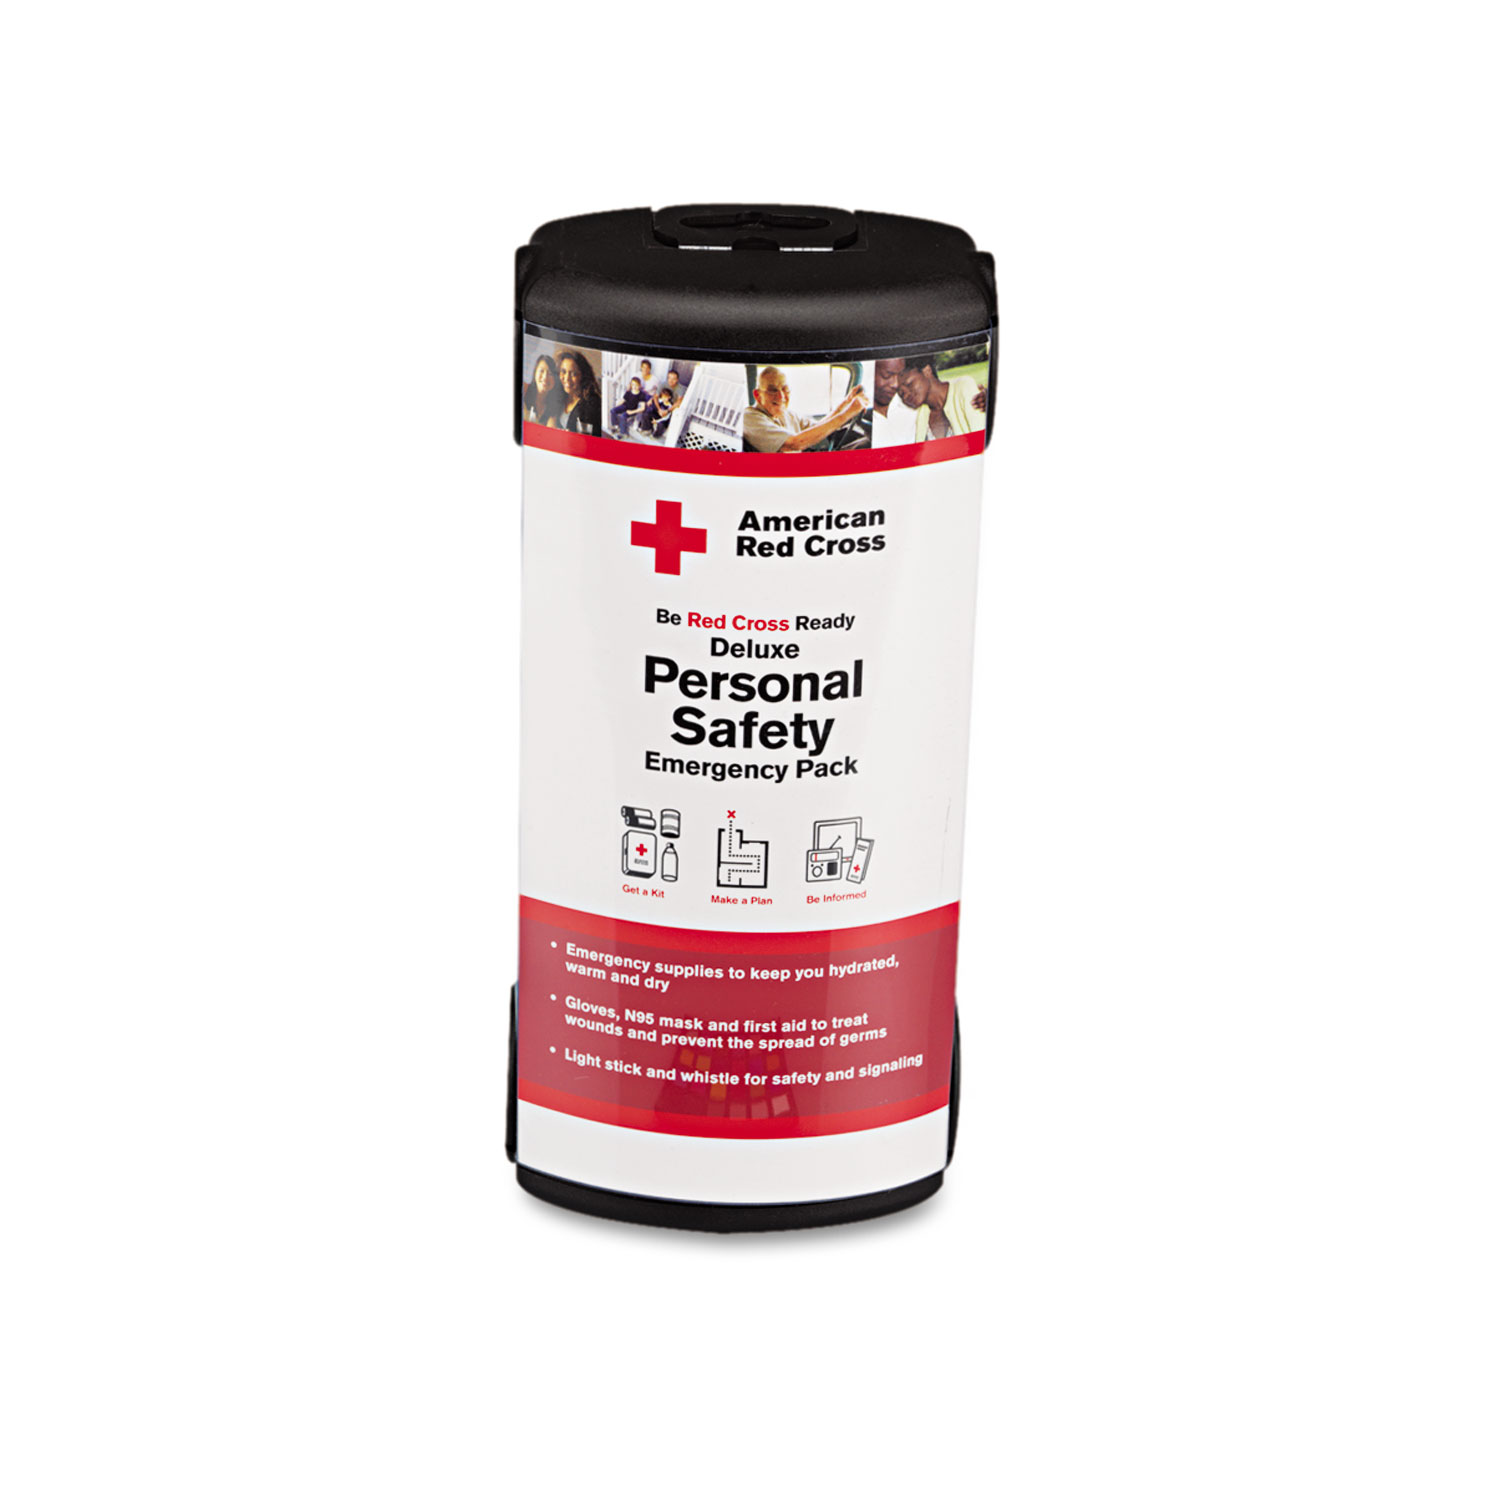 Deluxe Personal Safety Emergency Pack, 31-Pieces, Plastic Case